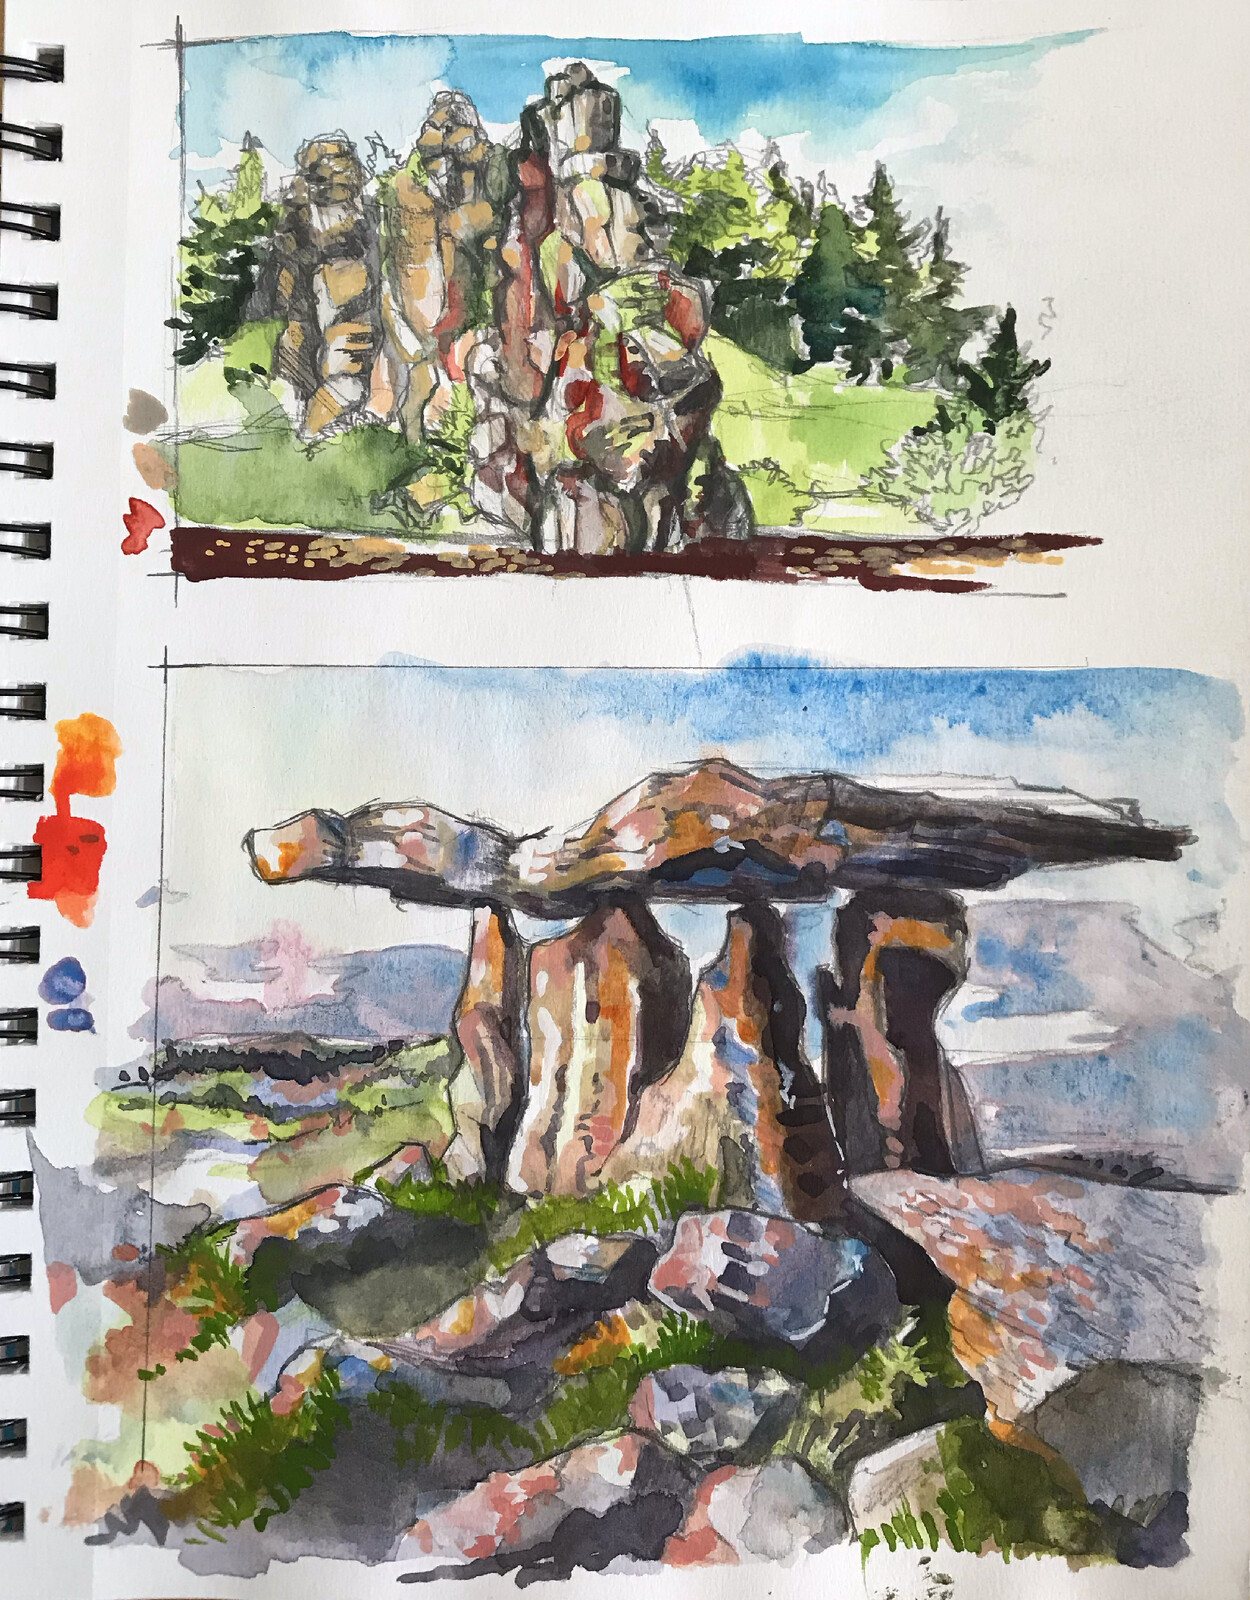 Some rocky landscapes in gouache and watercolor!